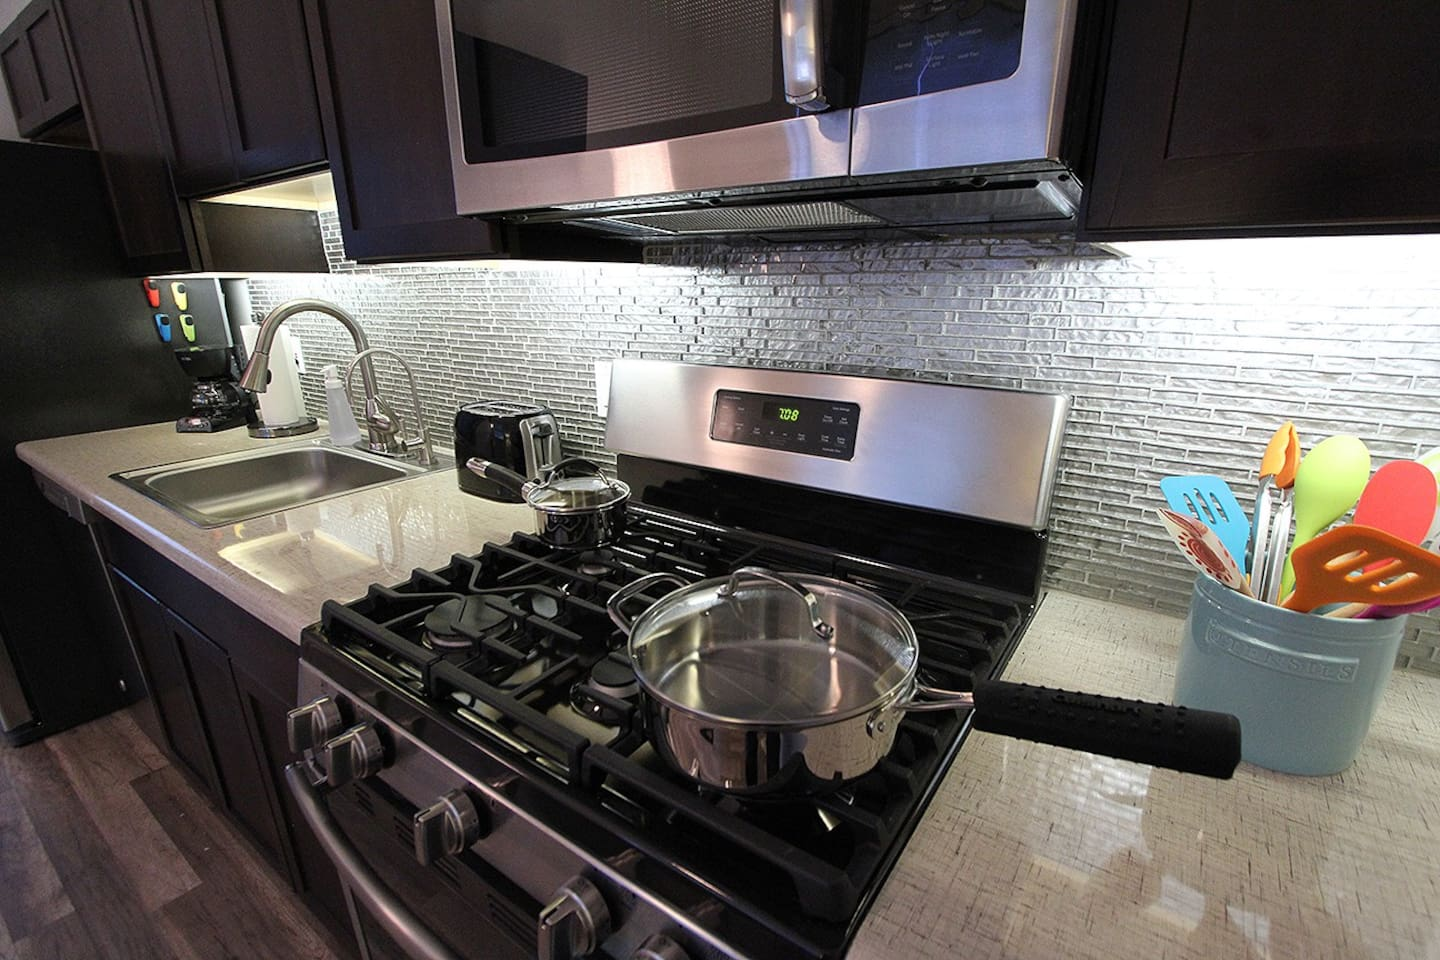 Full Kitchen with Gas Stove and Stainless Steel Appliances